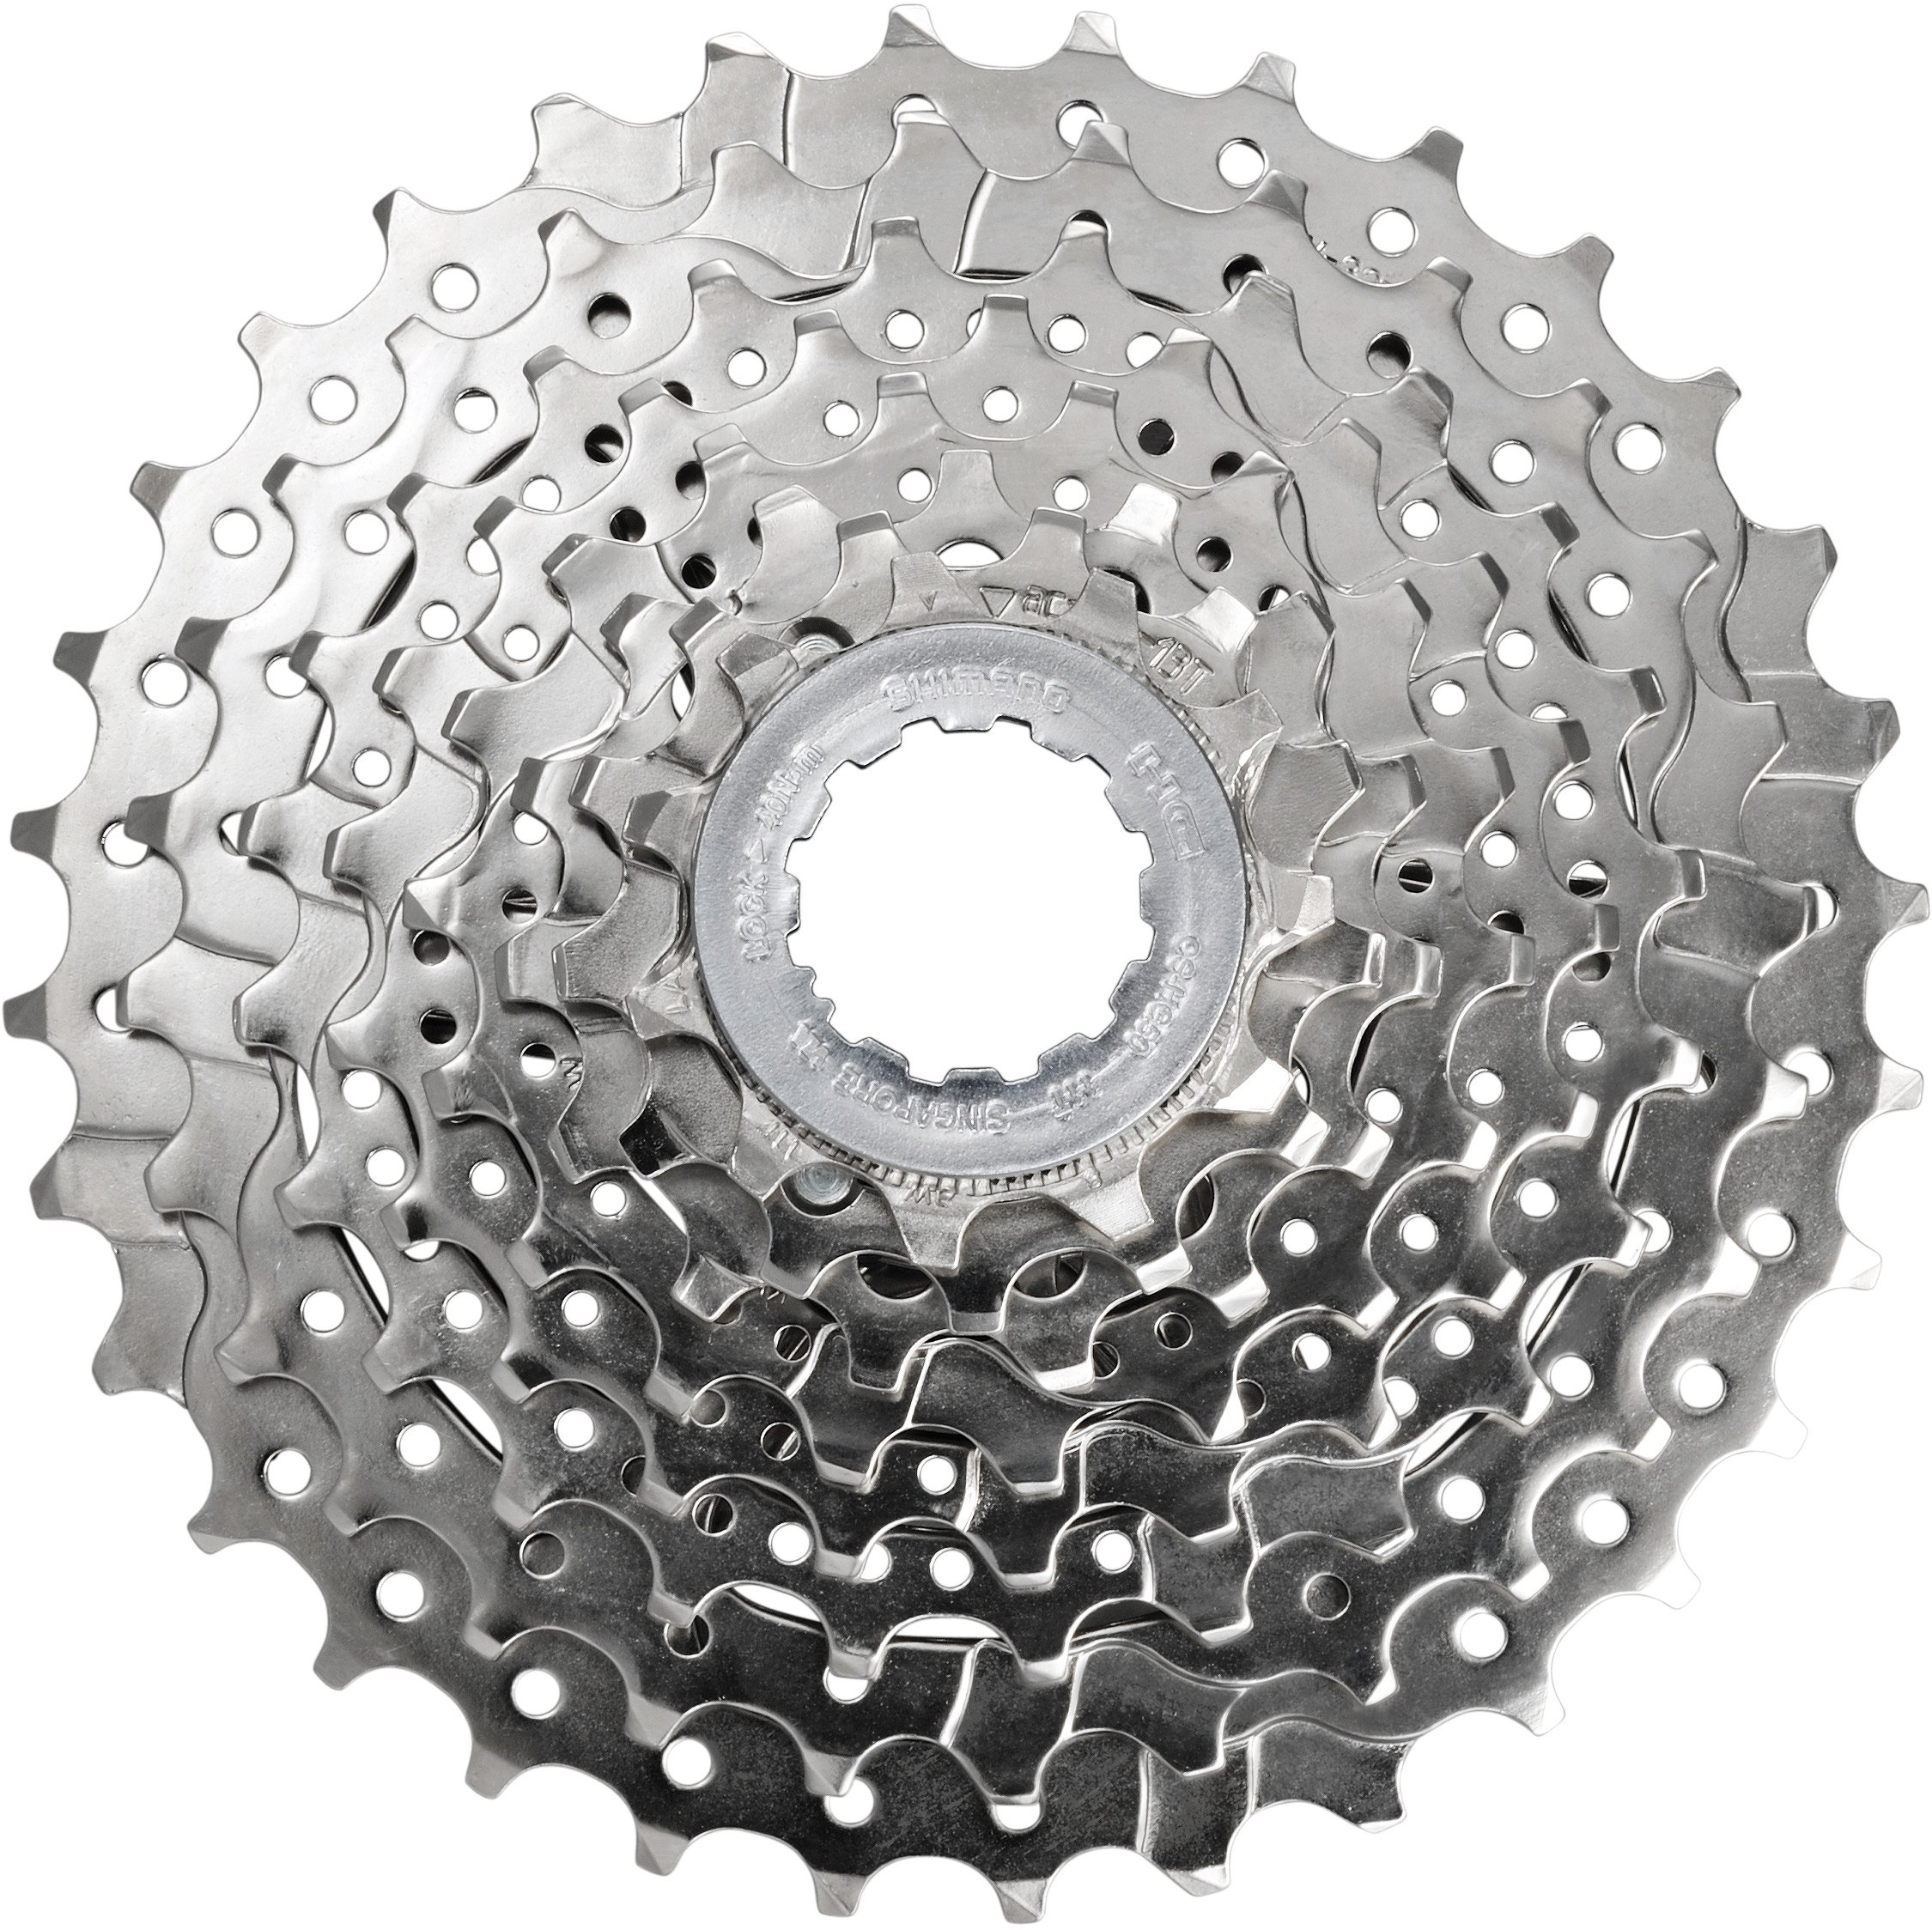 CS-HG50 8-speed cassette 11-32